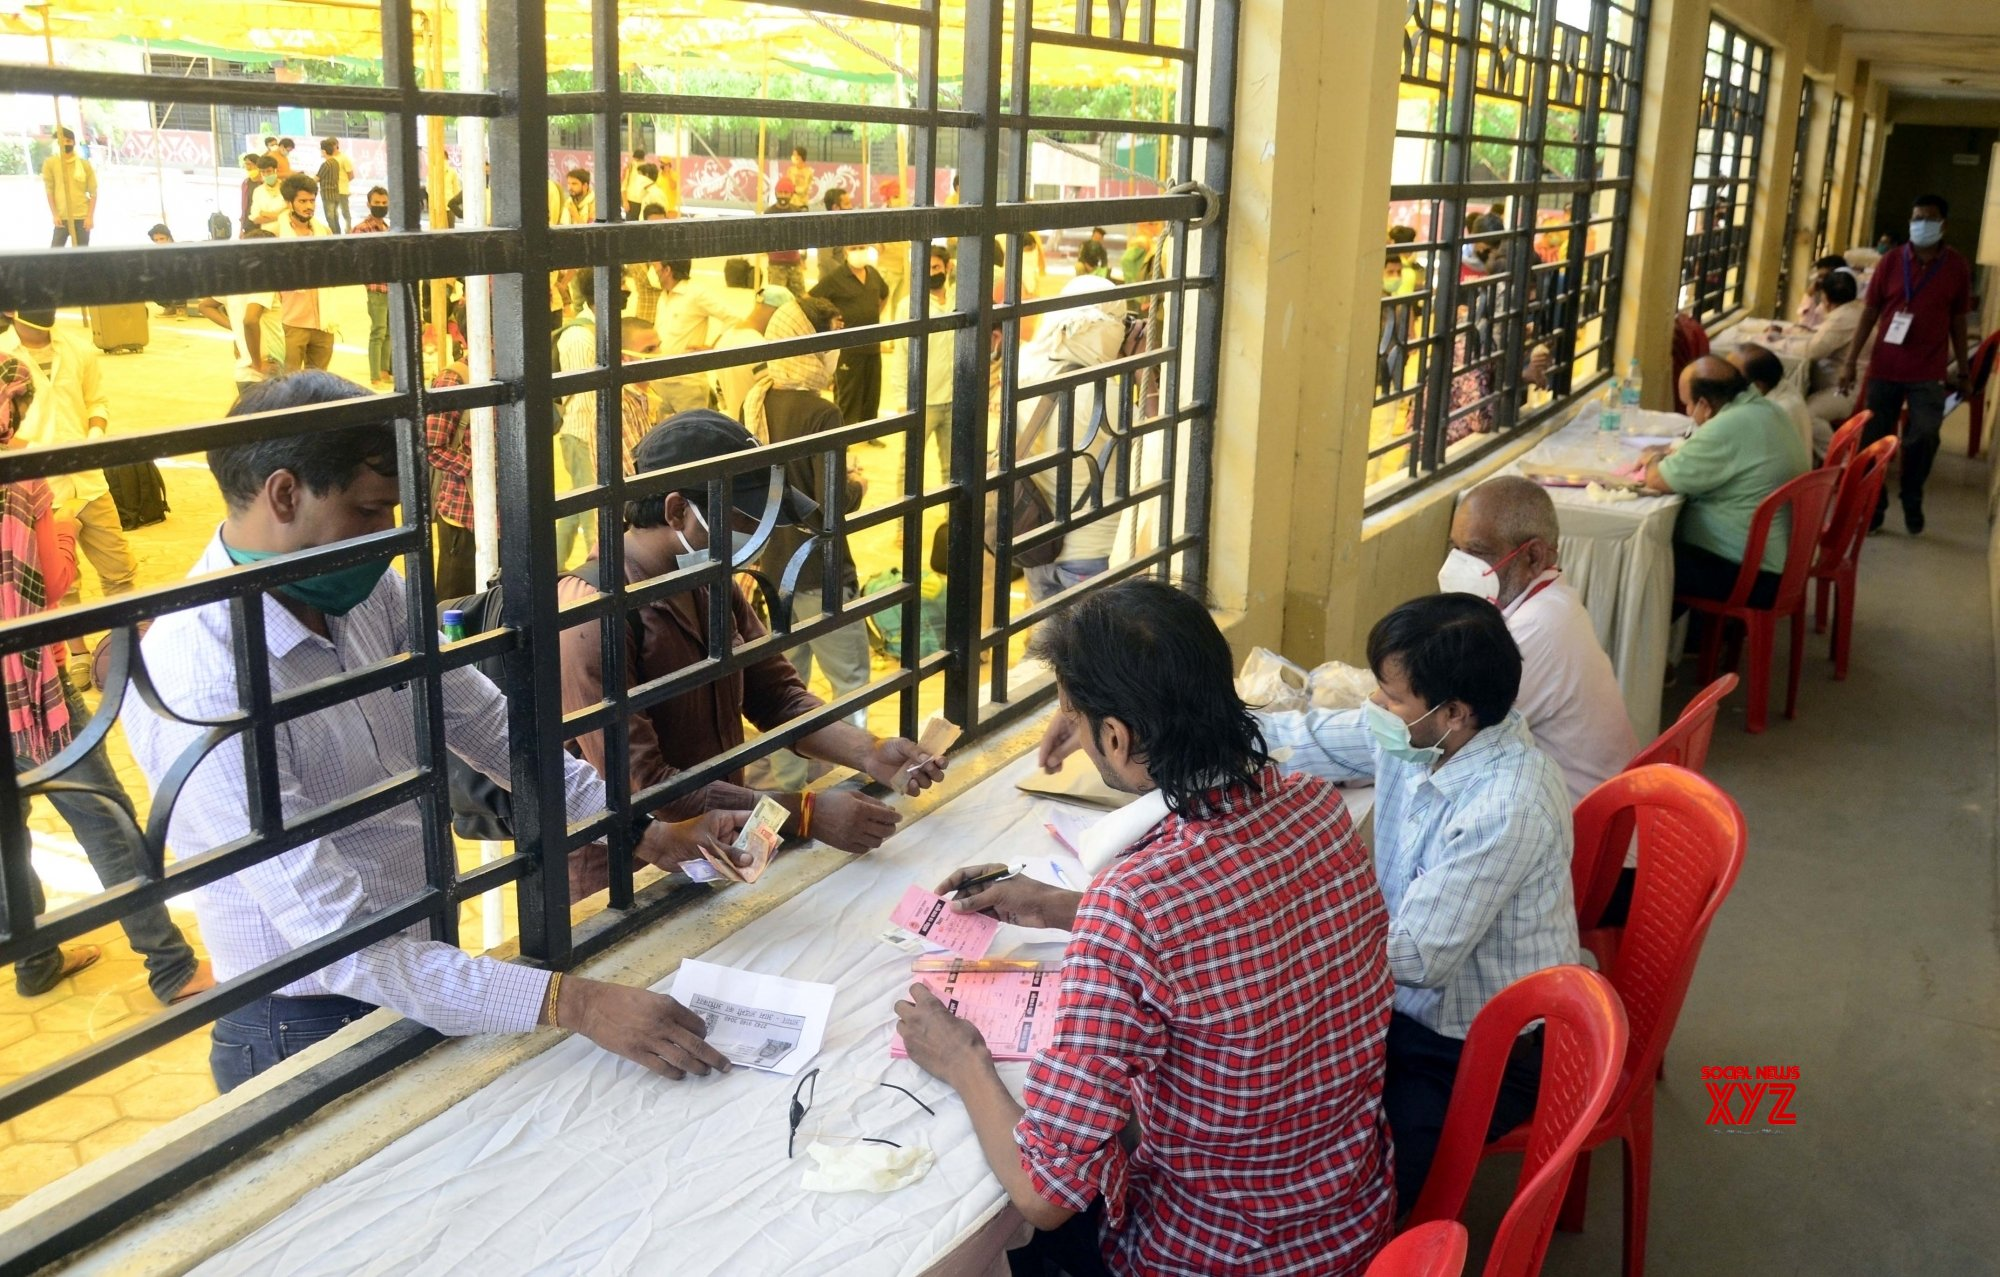 Bhopal: Bihar migrants register themelves to return to their home state during lockdown - 4 #Gallery